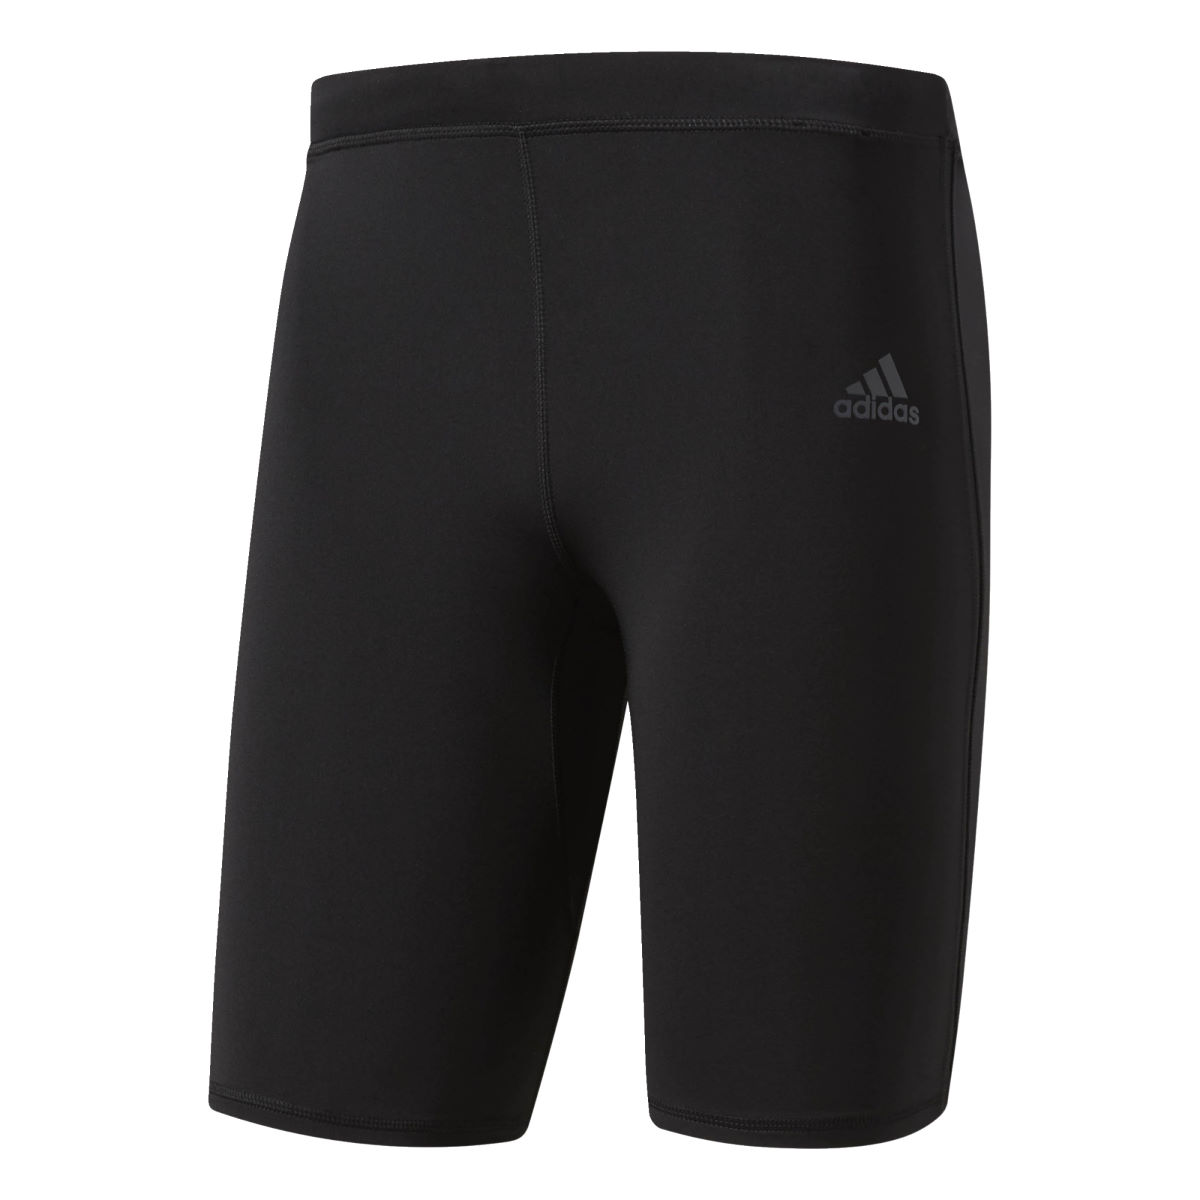 Adidas Response Short Tight (SS17)   Running Shorts